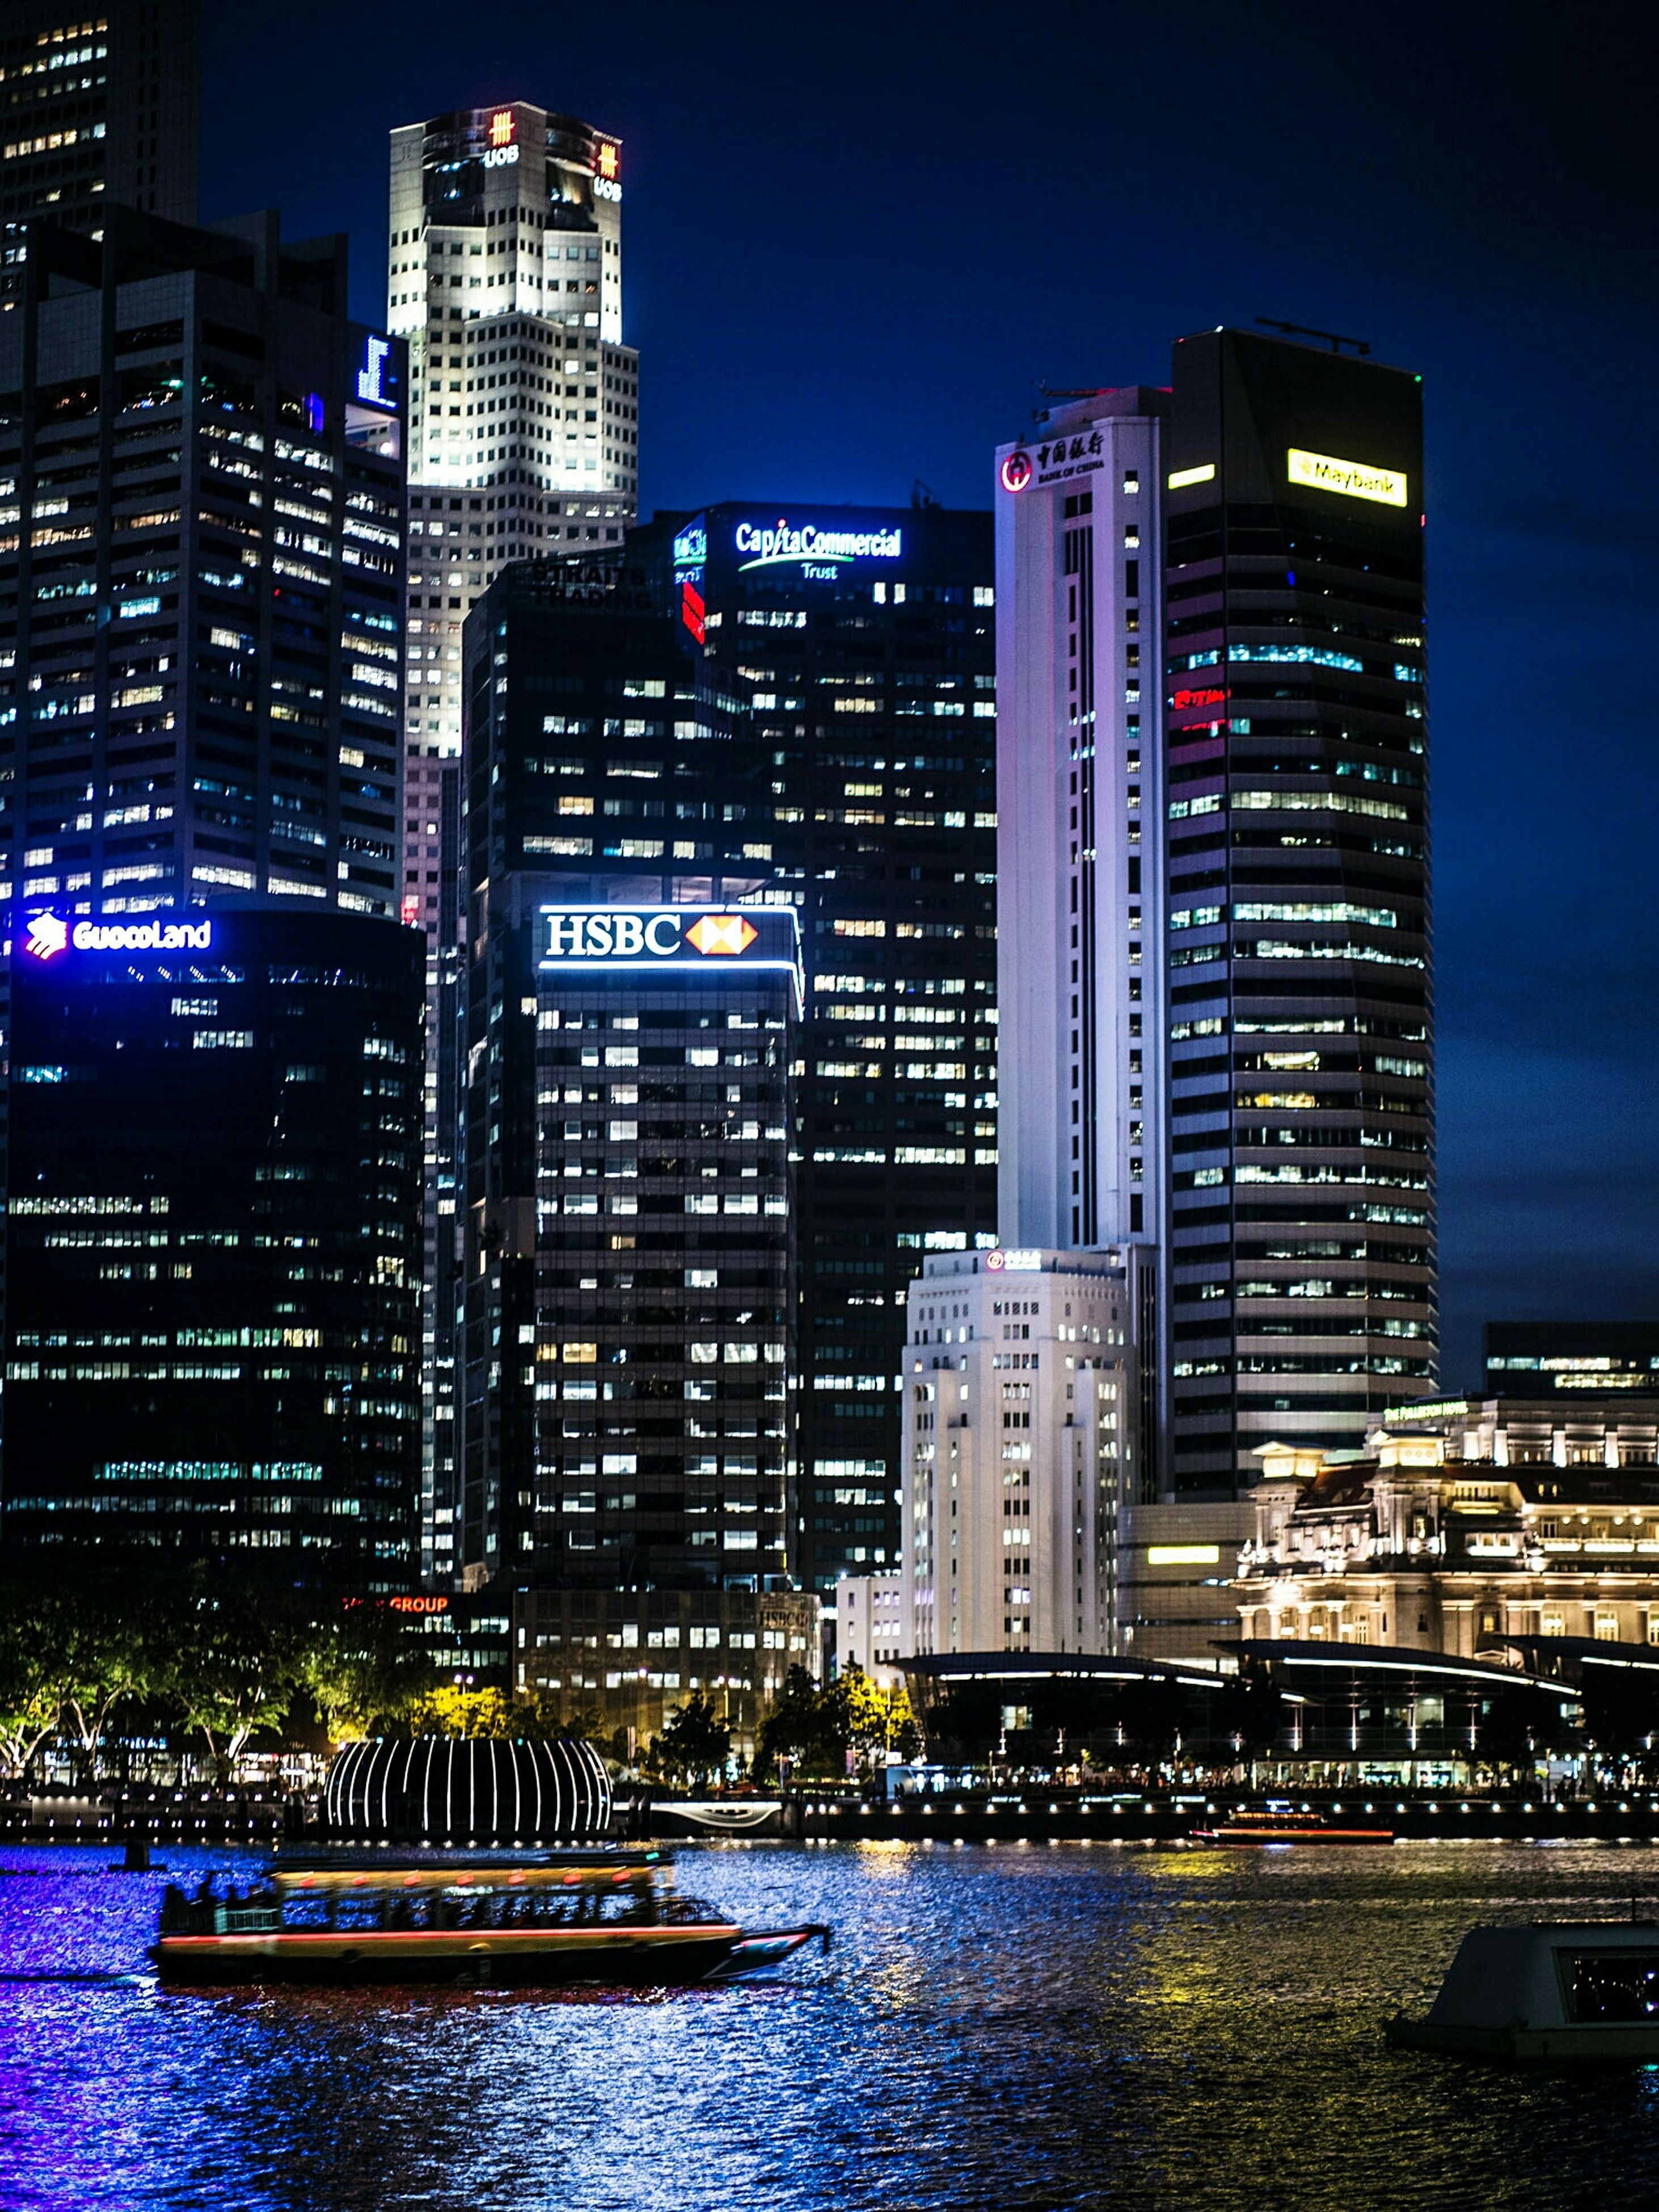 building exterior, skyscraper, city, architecture, built structure, waterfront, tall - high, modern, illuminated, office building, water, tower, urban skyline, cityscape, financial district, river, night, boat, city life, capital cities, skyline, travel destinations, tall, building, sky, outdoors, development, tourism, blue, no people